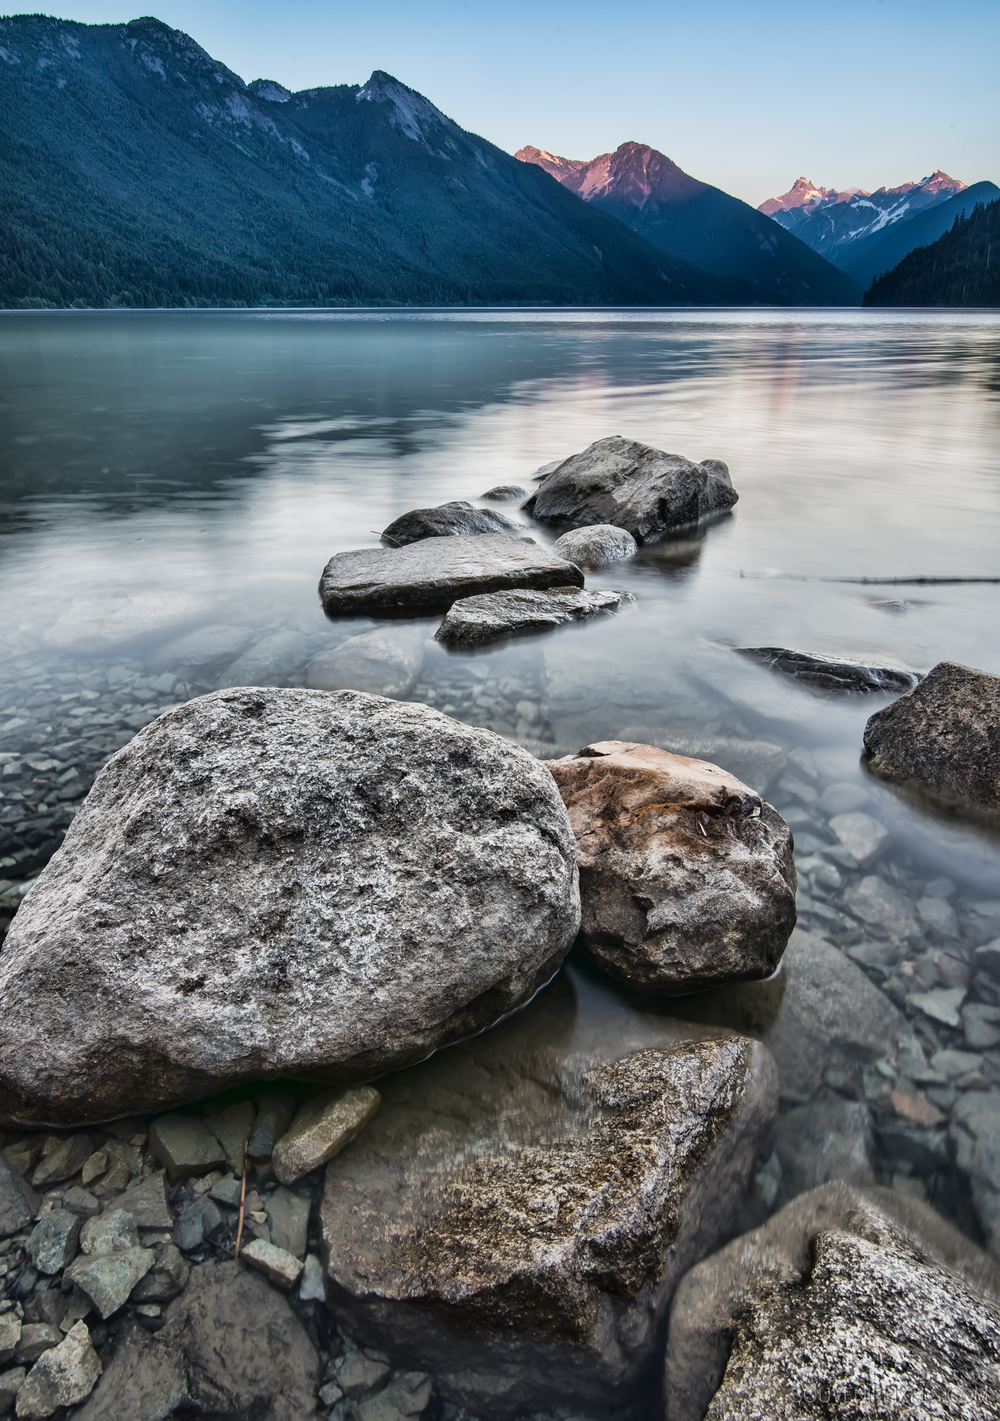 P0597-Chilliwack Lake Gritty Rocks-XLarge.jpg